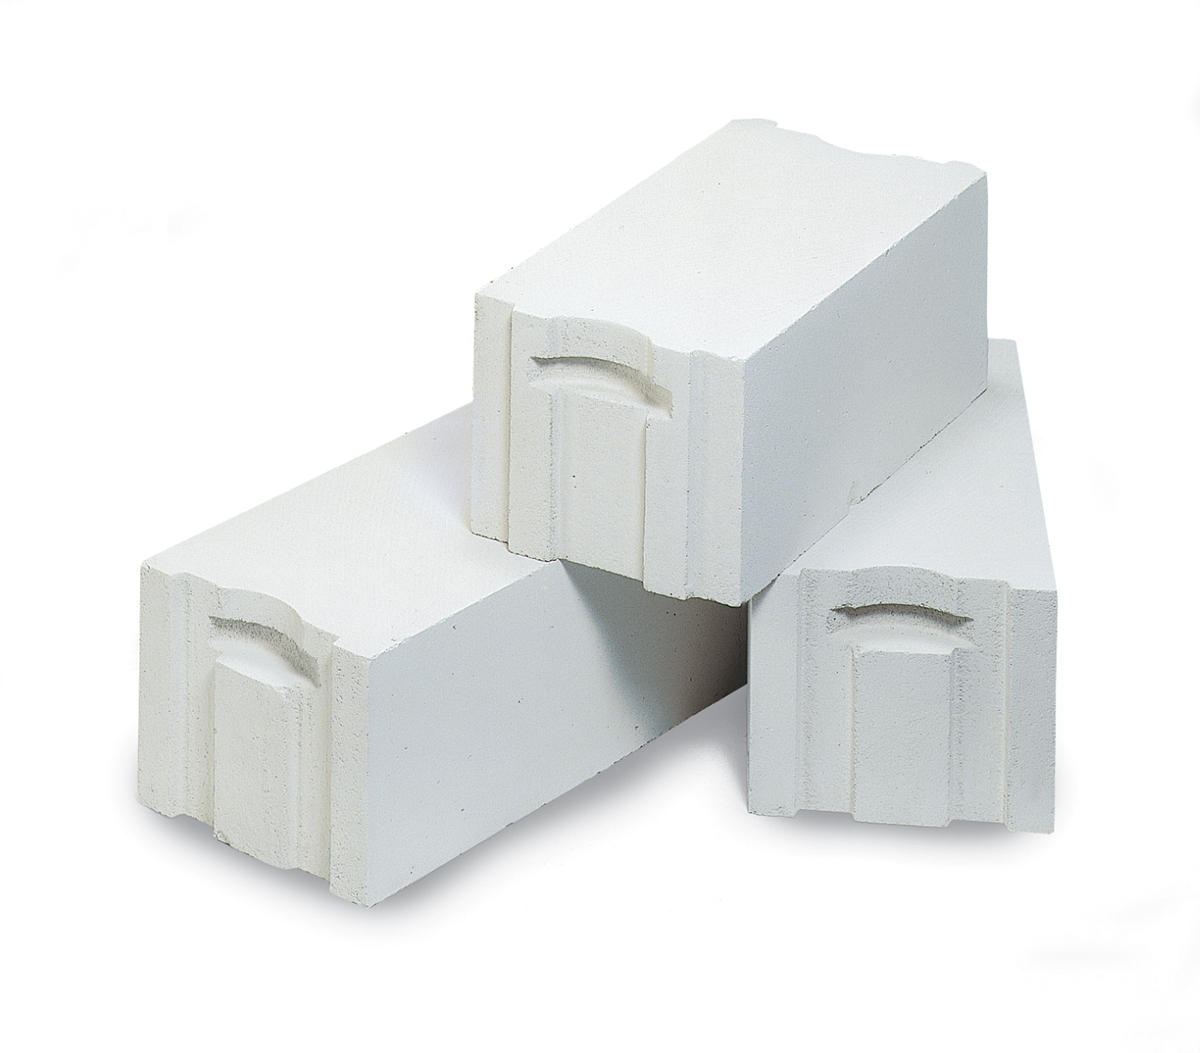 Ytong cellular concrete bricks